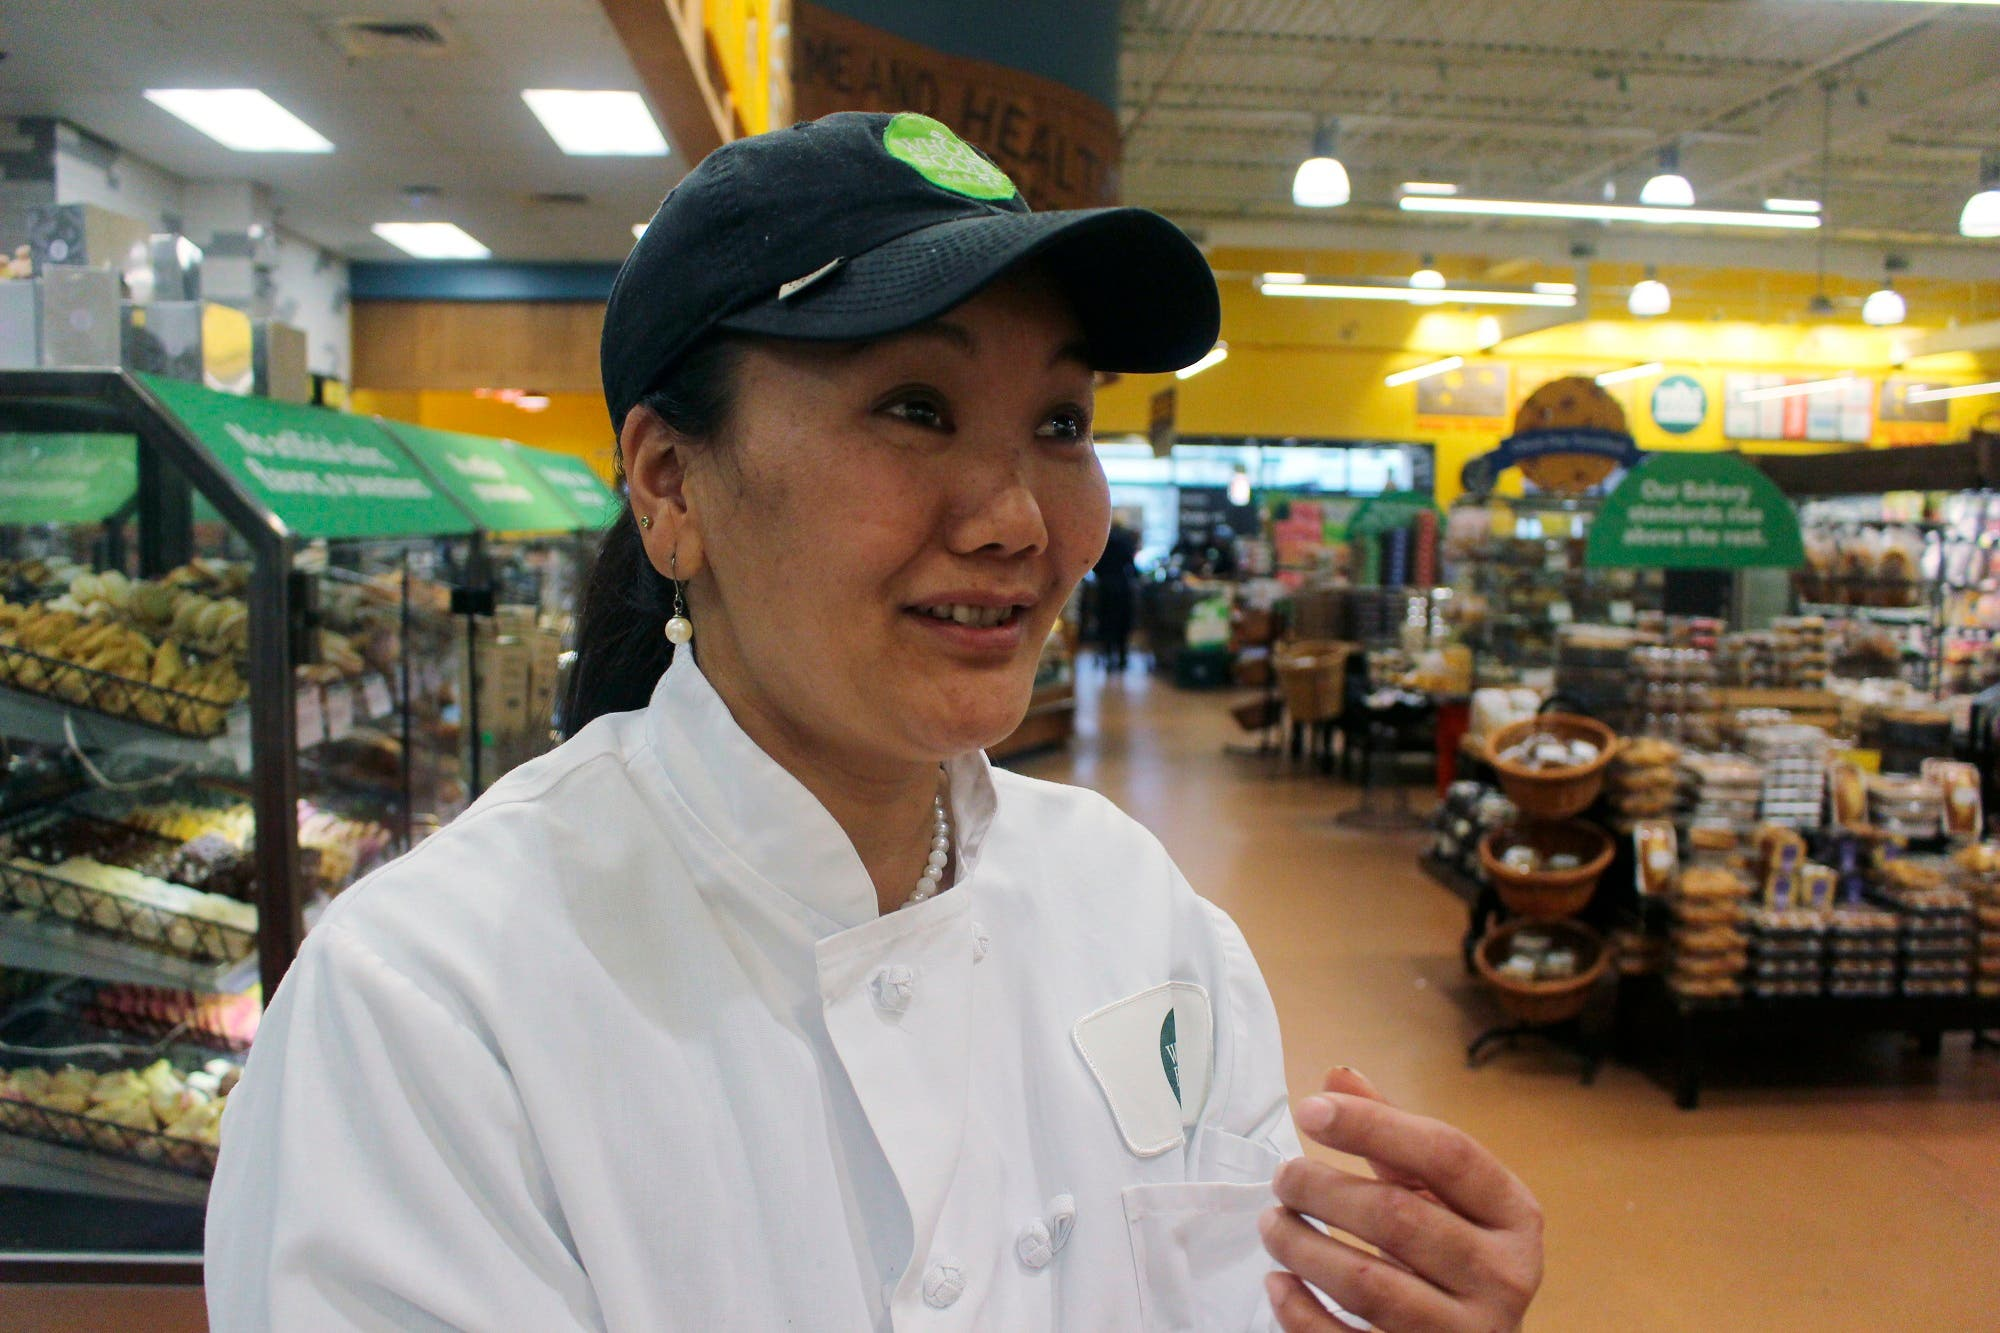 In this April 3, 2018, photo, Lhakpa Sherpa prepares to start her shift as a dishwasher at the Whole Foods Market in West Hartford, Conn. (AP)